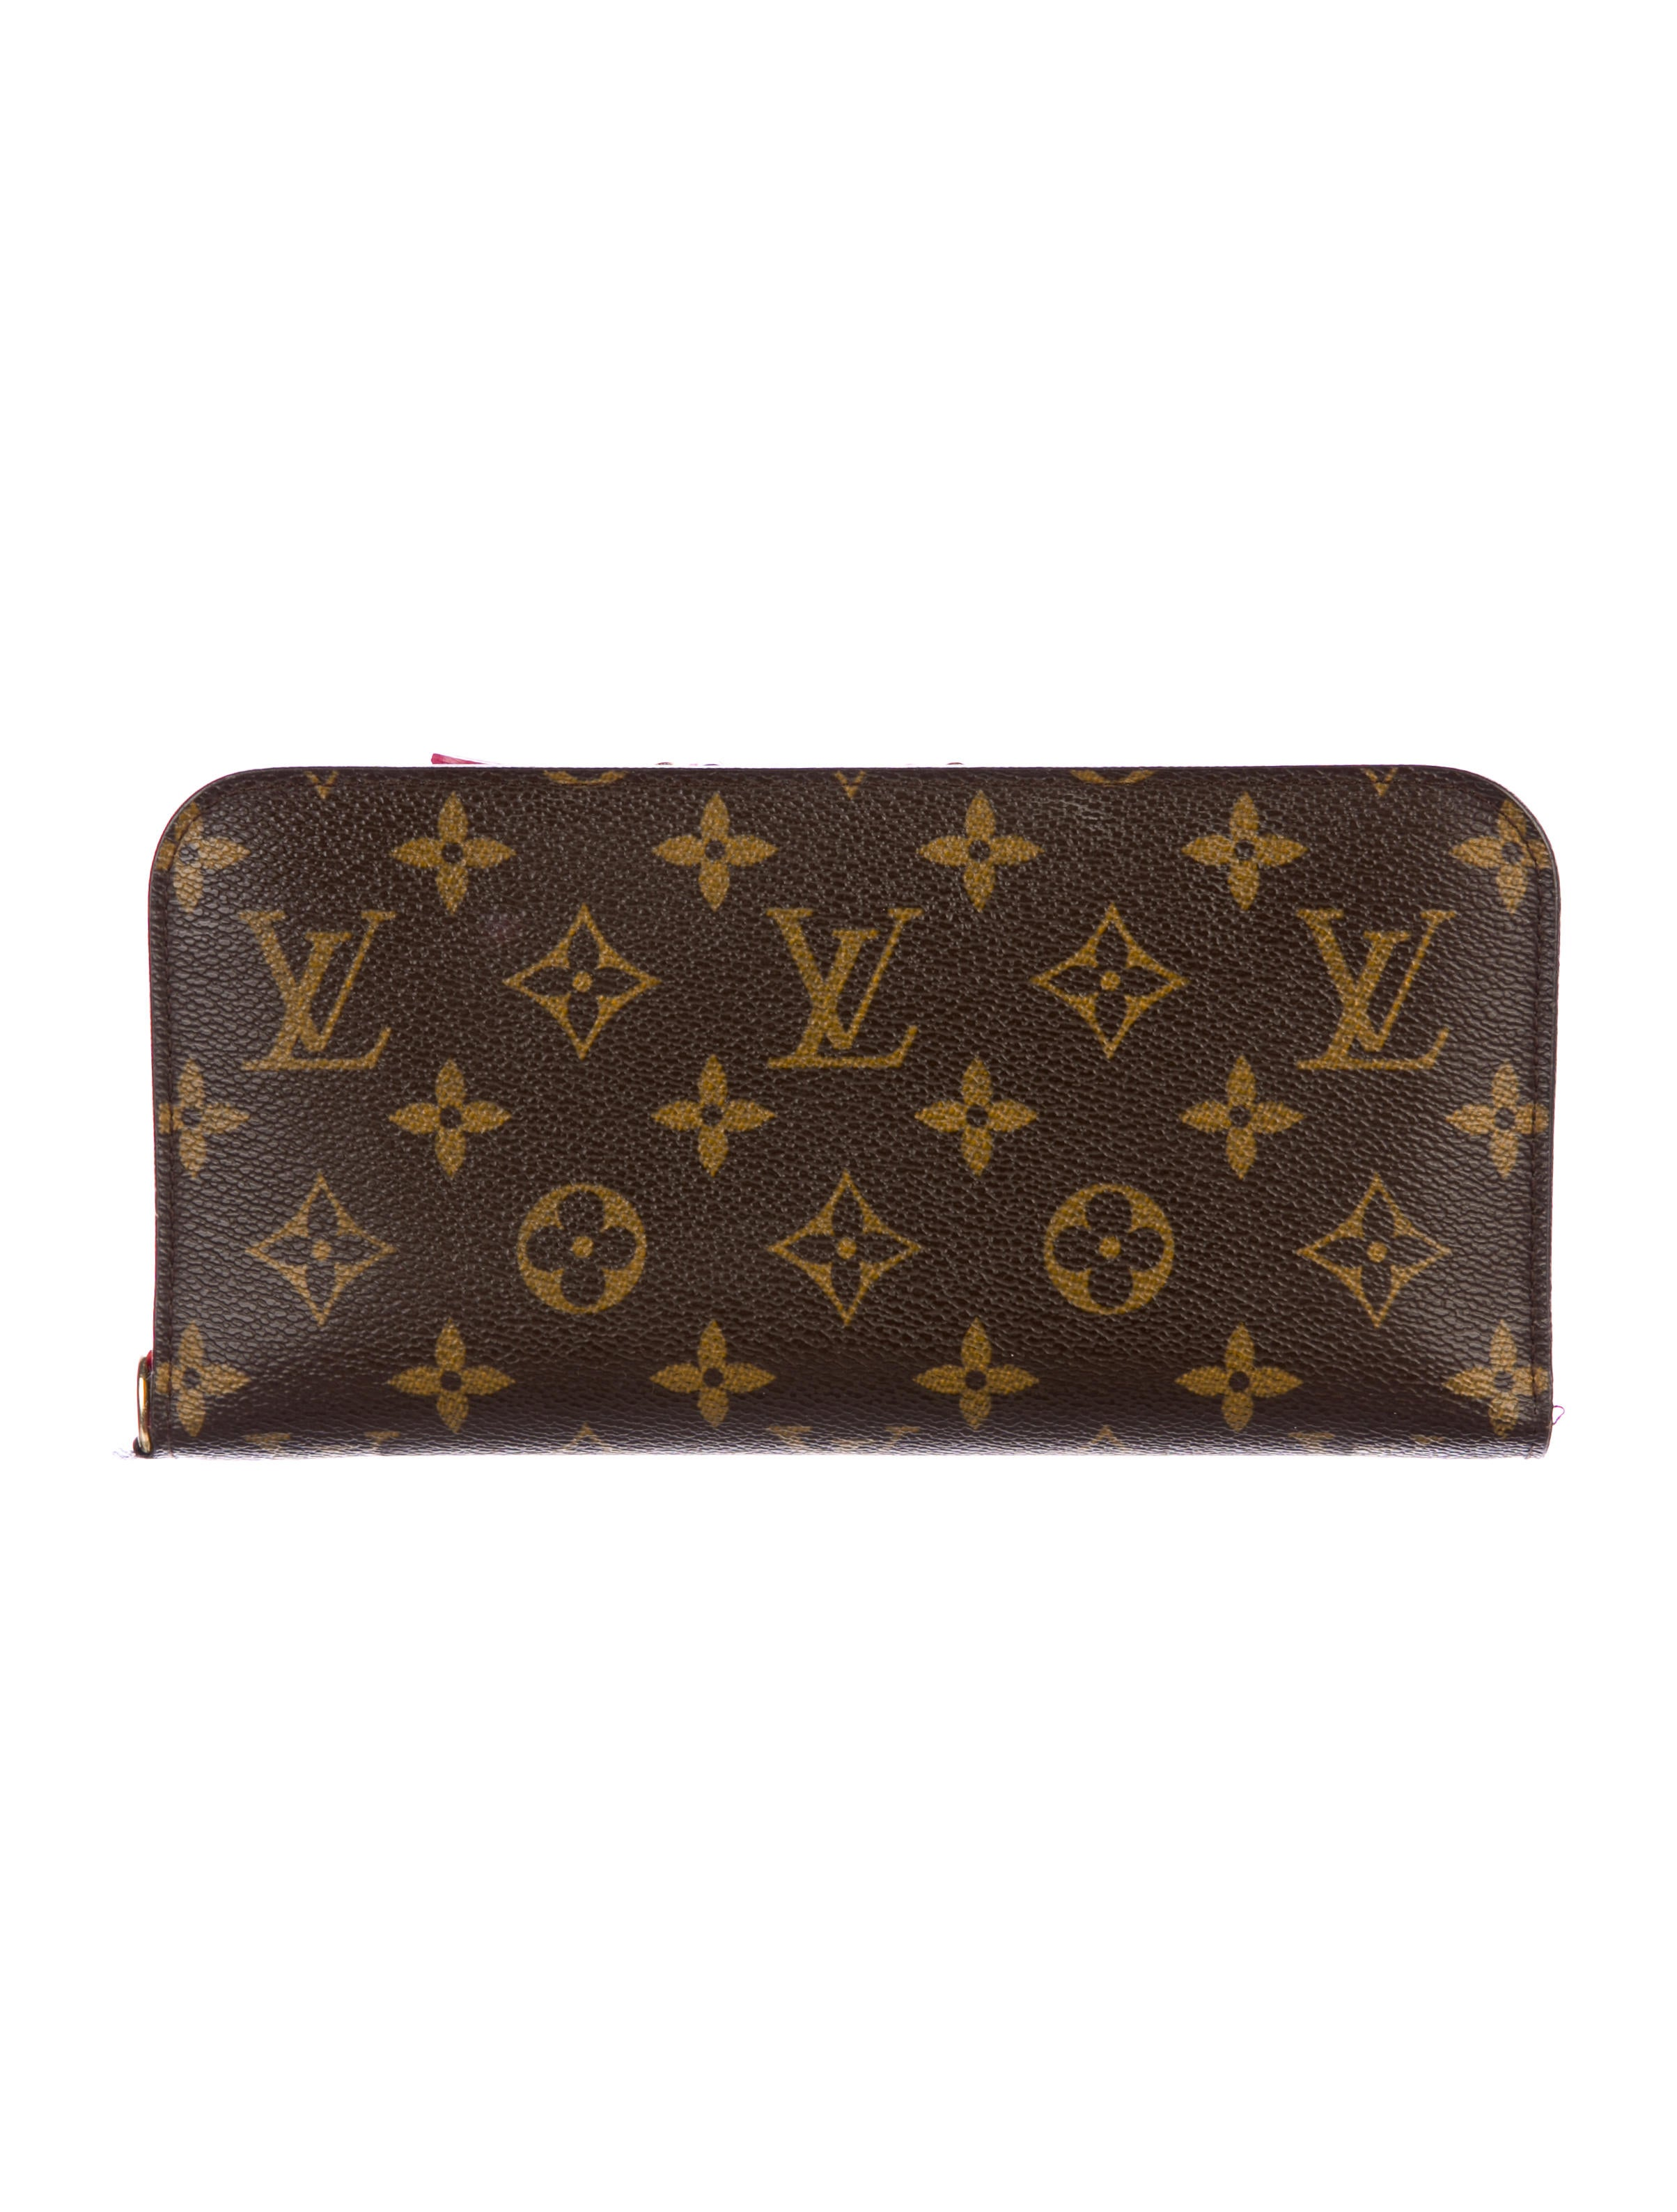 763288155ee Louis Vuitton Monogram Insolite Wallet - Accessories - LOU184578 ...